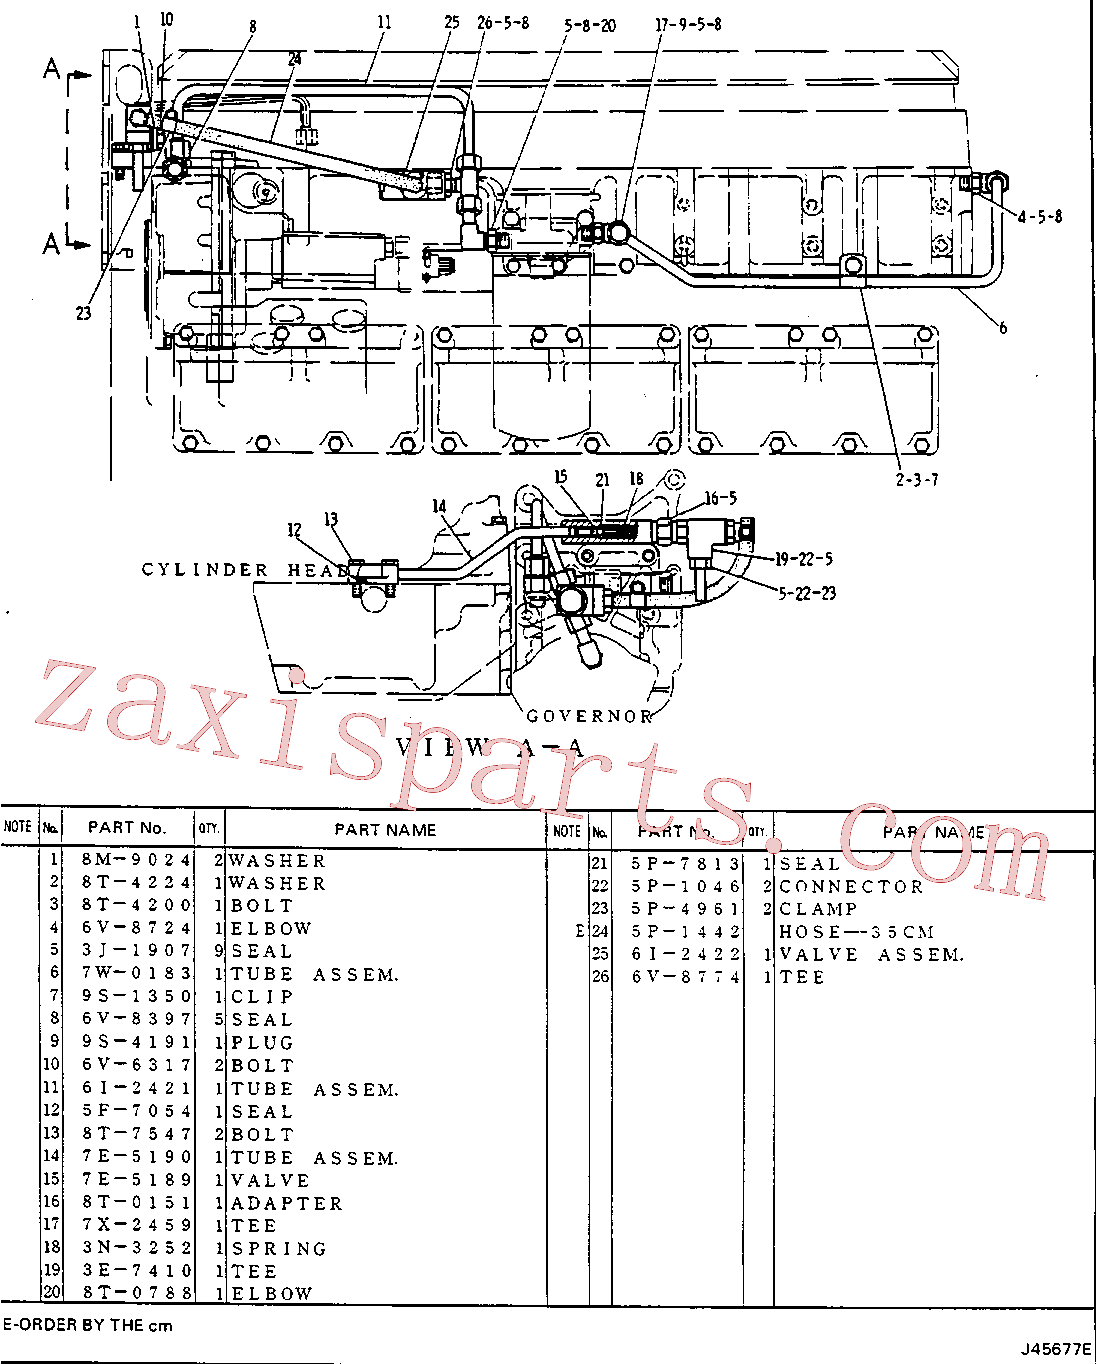 CAT 8T-0151 for EL240C Excavator(EXC) fuel system and governor 6I-2420 Assembly